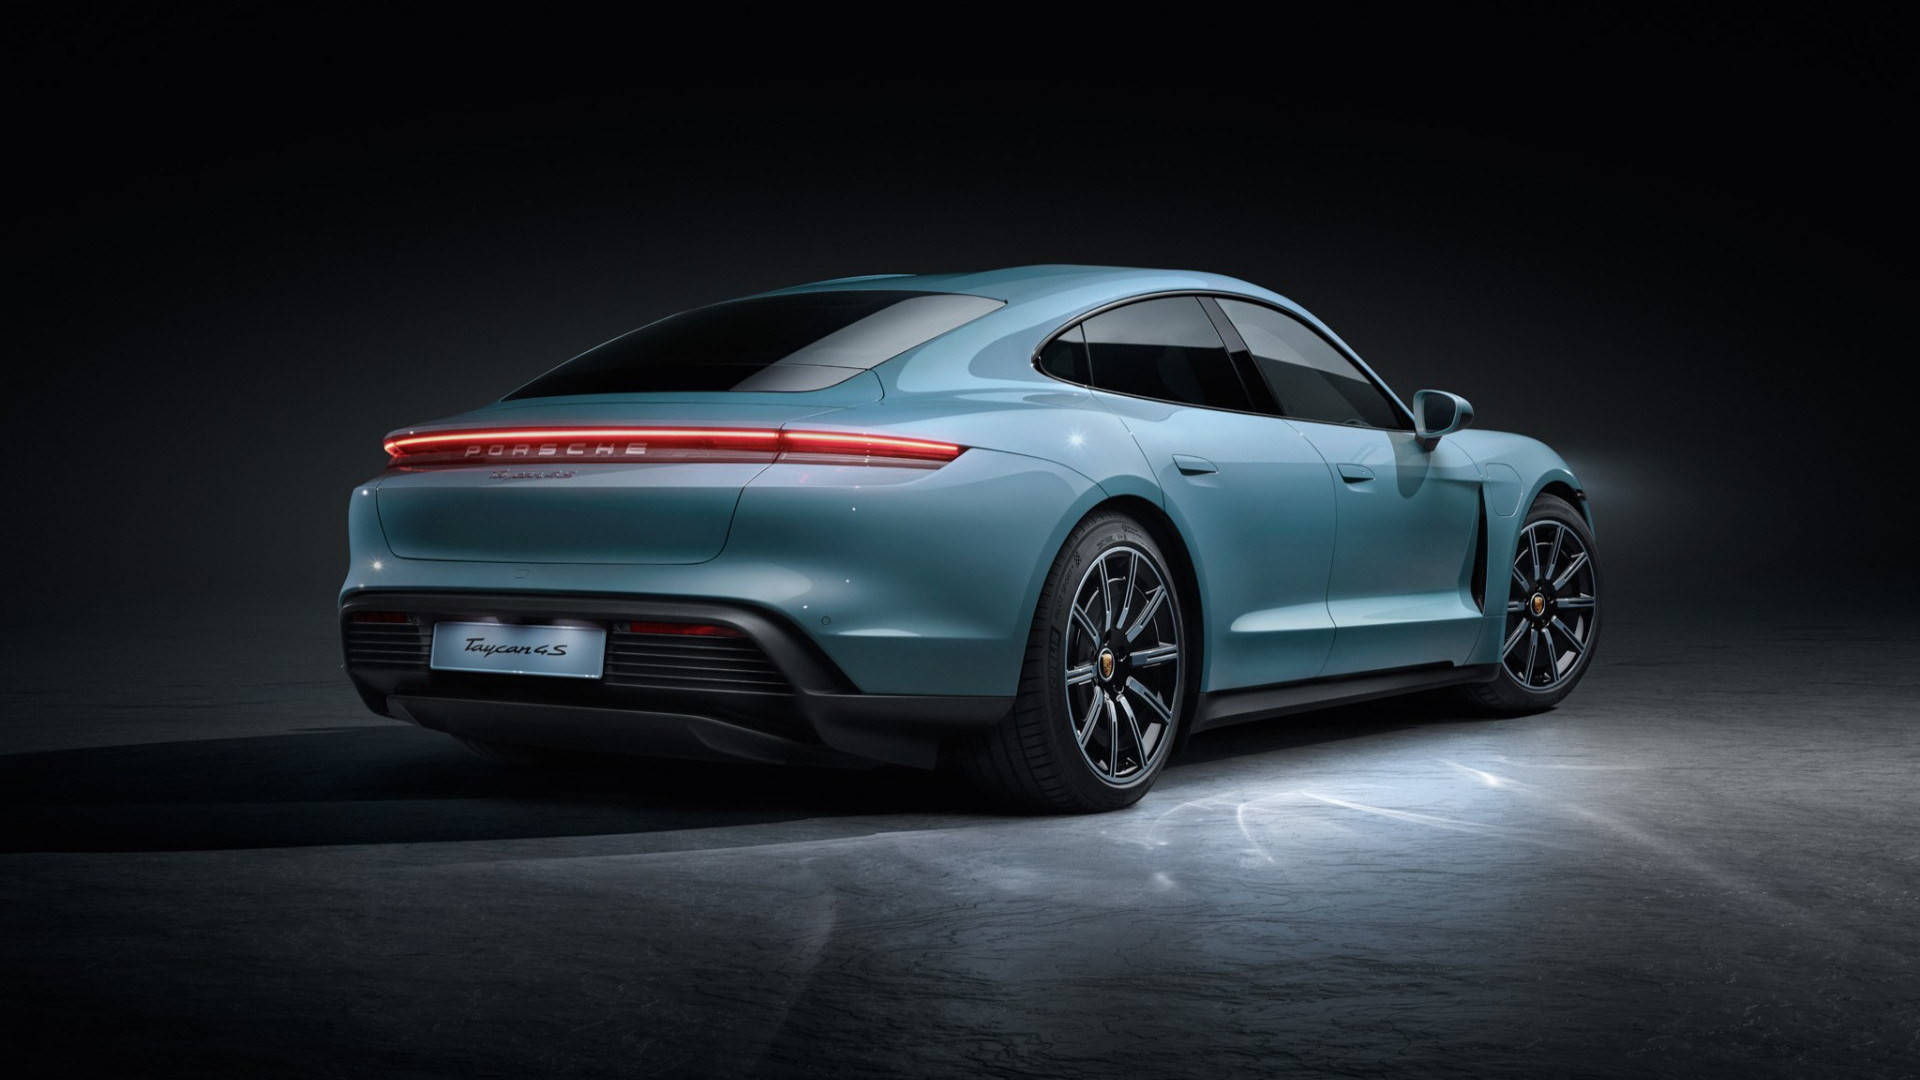 Porsche Taycan 4S revealed with cheaper starting price, two power levels